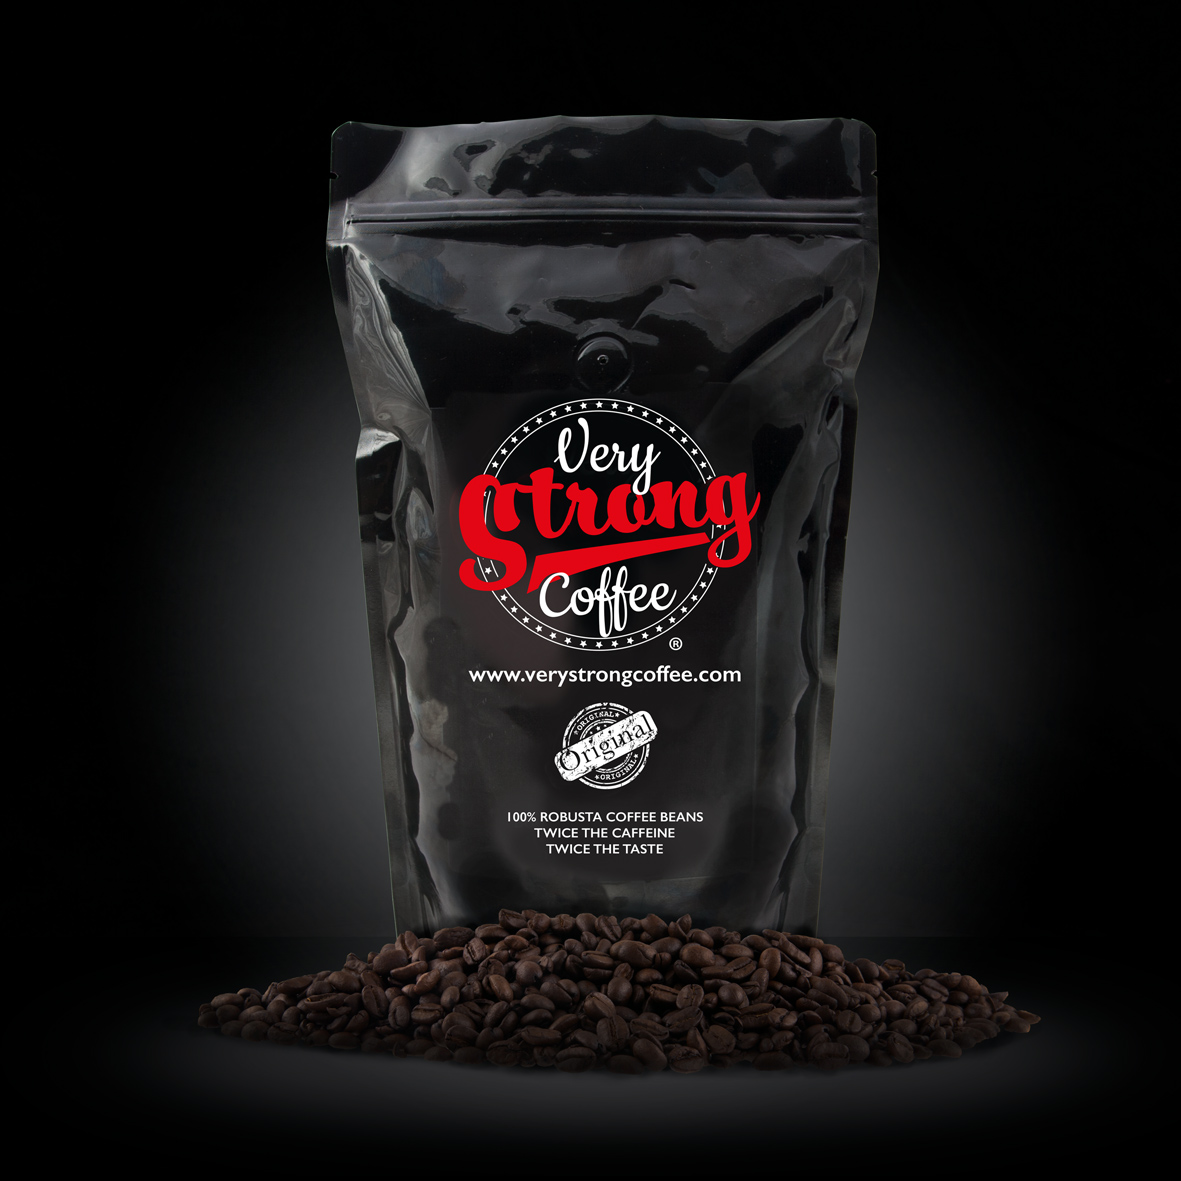 This makes us the strongest coffee in the UK!